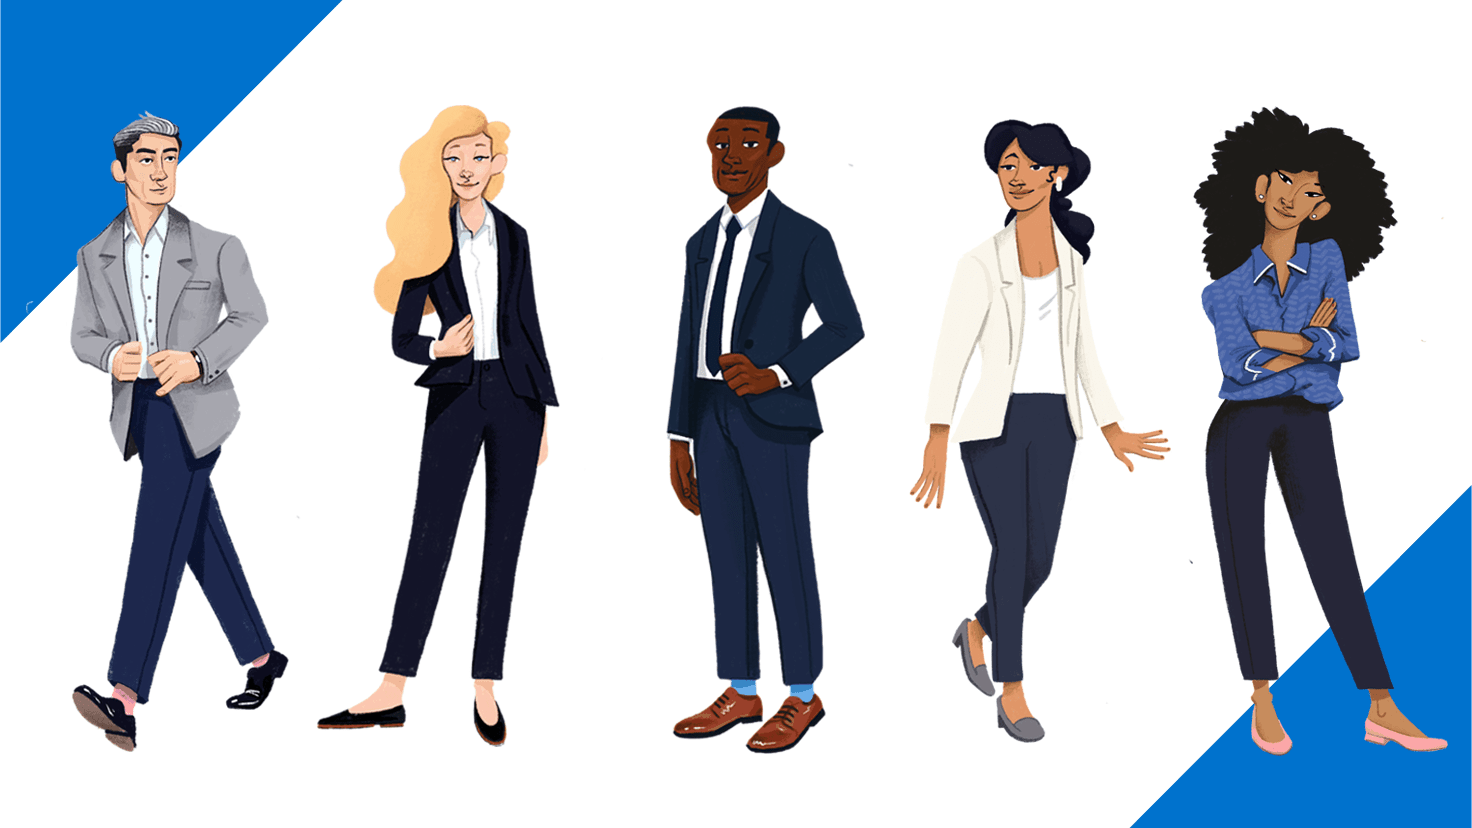 Dress For Success 15 Job Interview Outfit Examples For